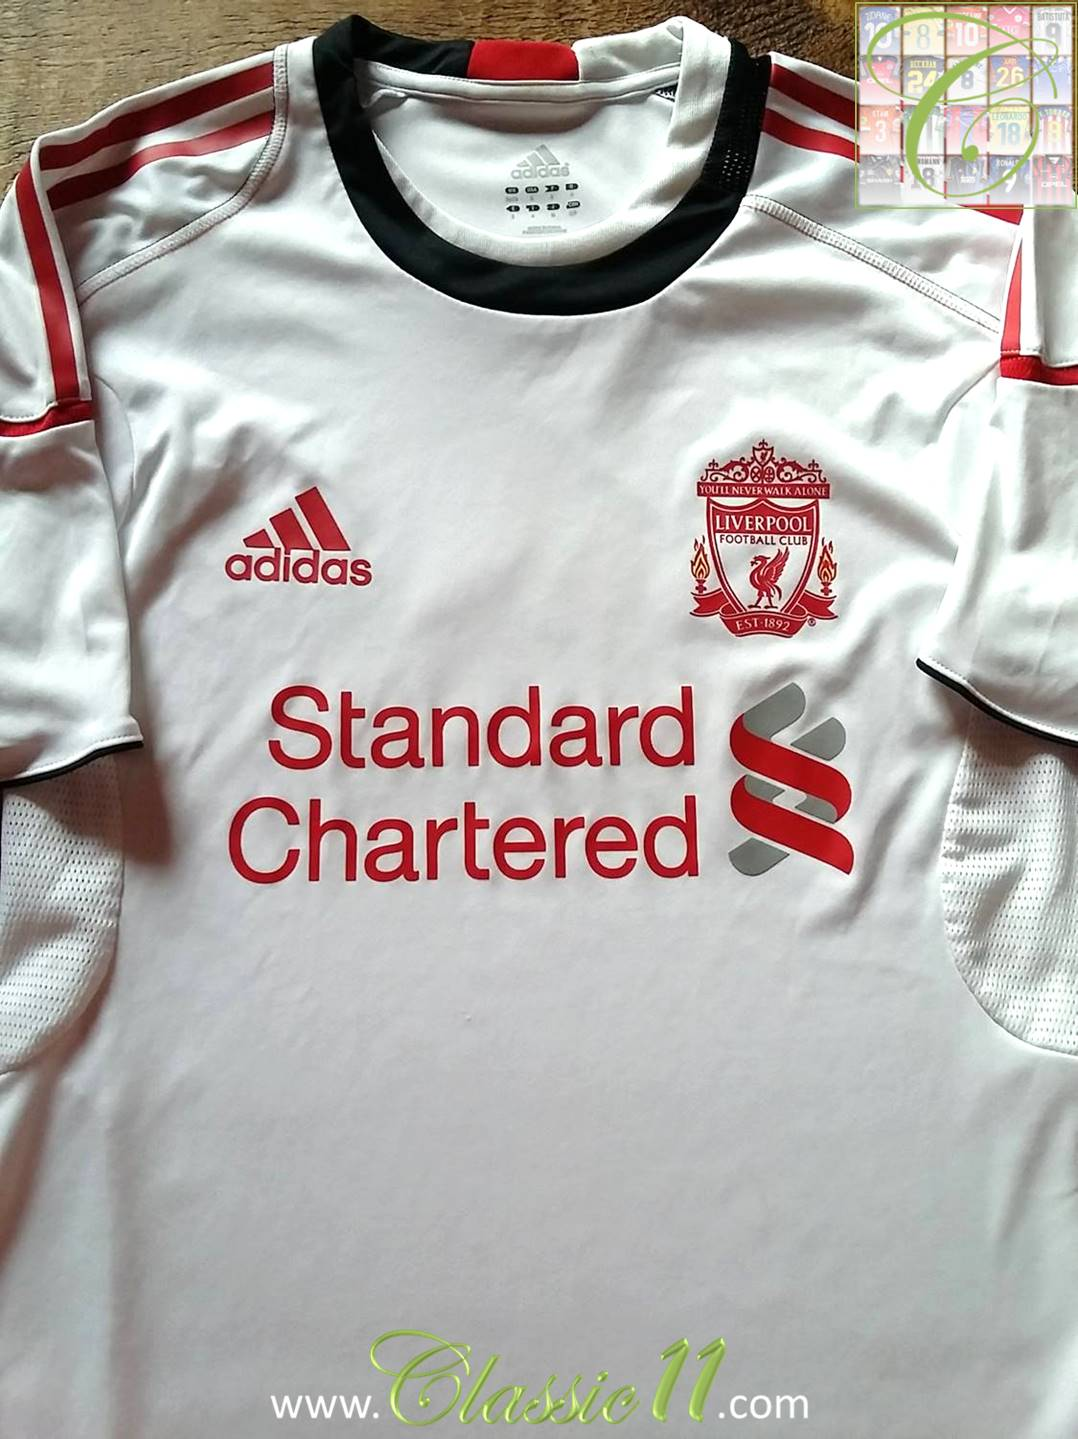 ad6787d509e Liverpool Training Leisure Maillot de foot 2010 - 2011.